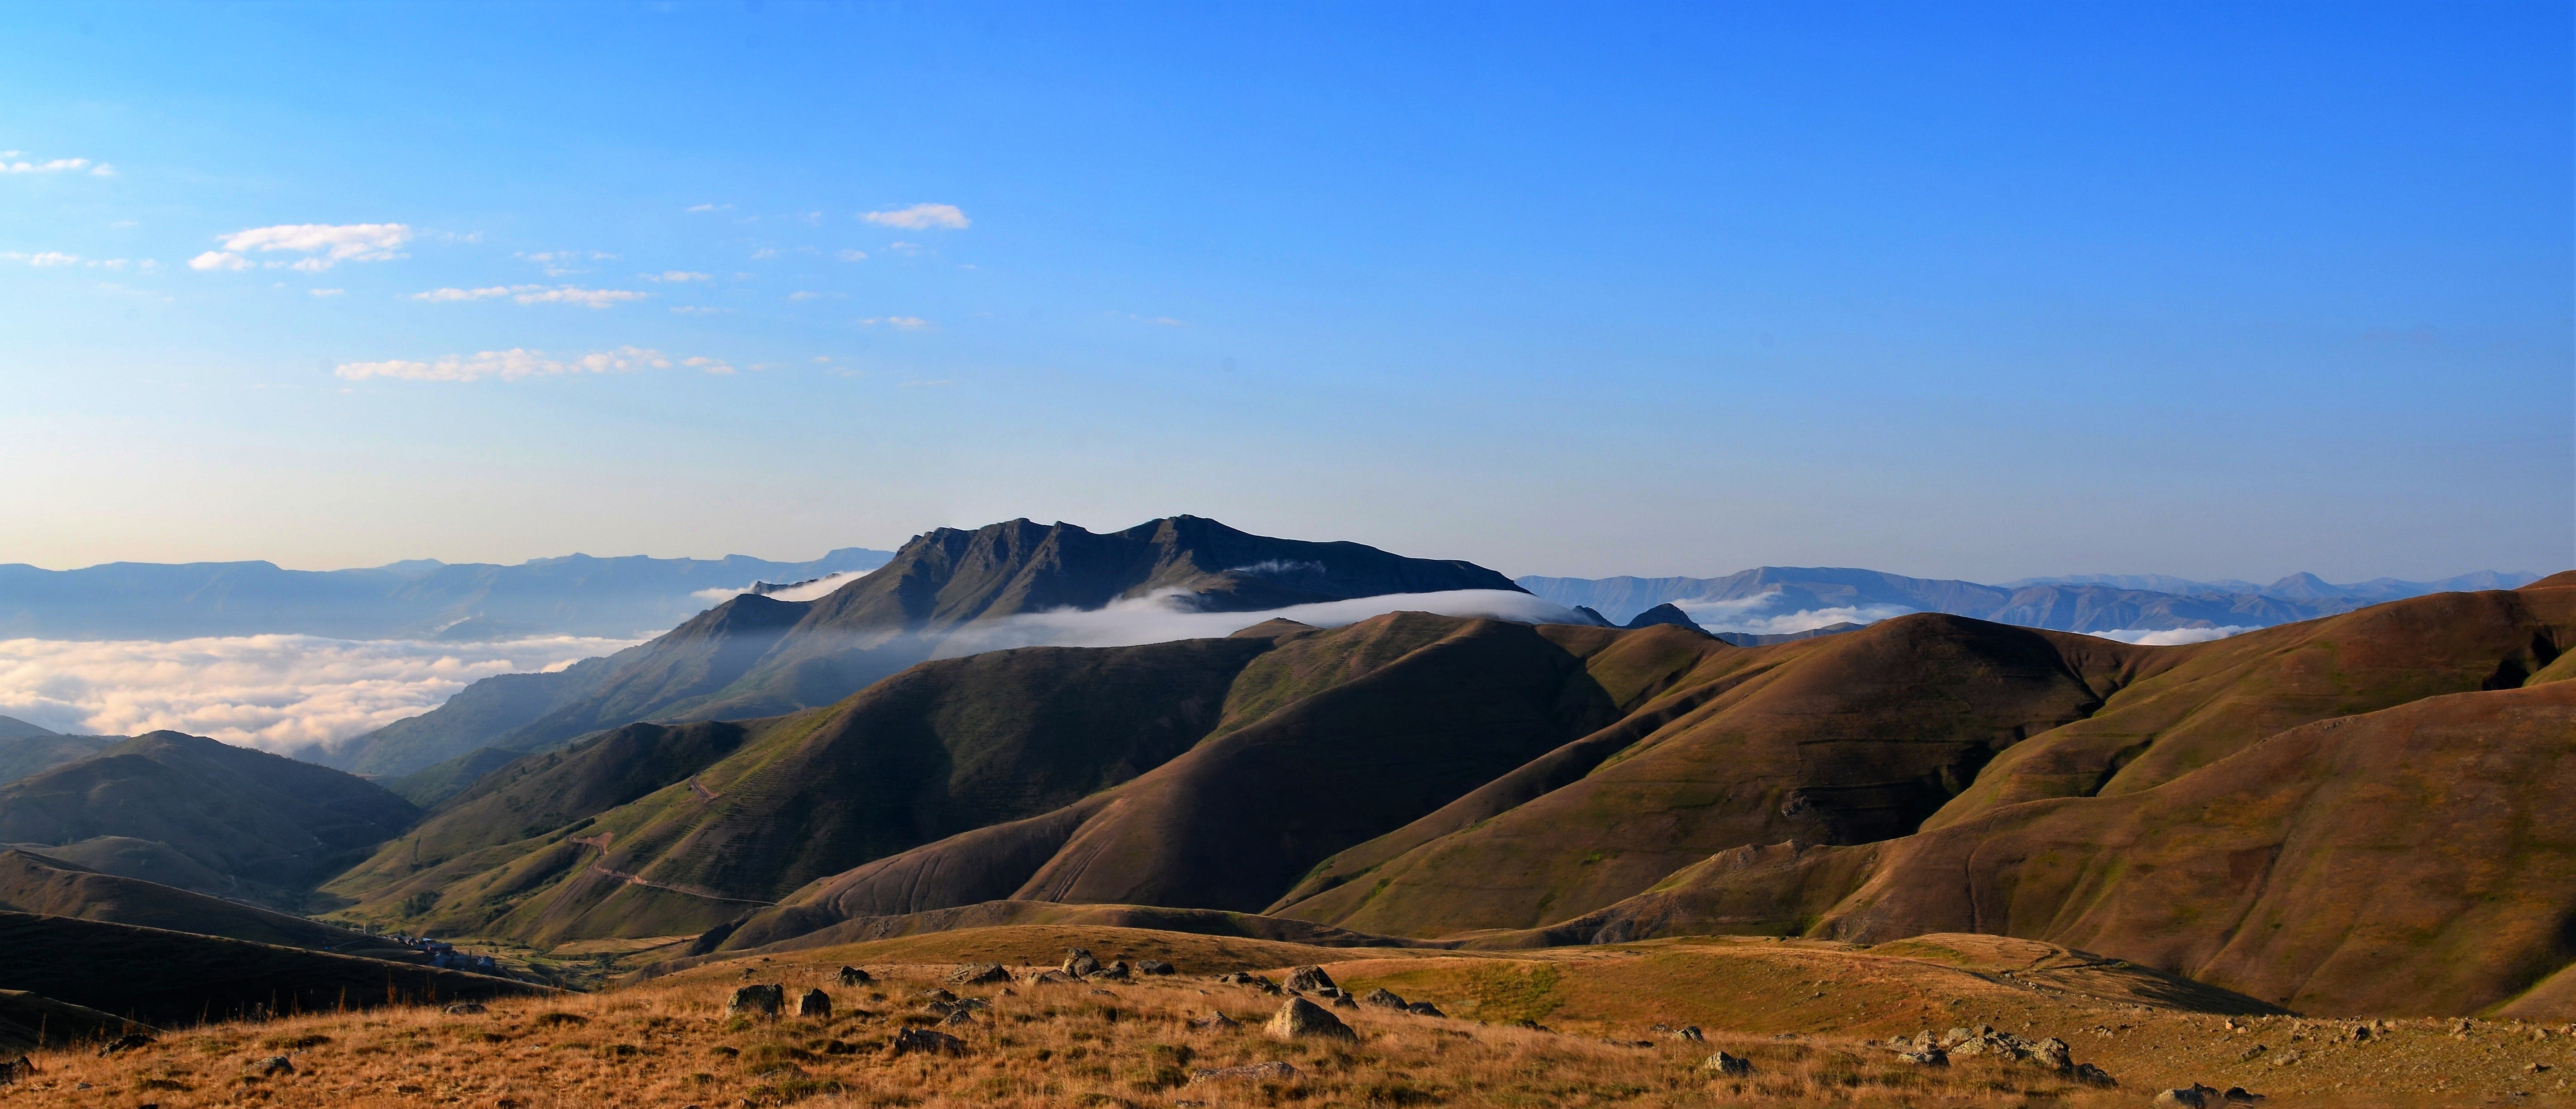 Landscape Photography of Brown Mountain